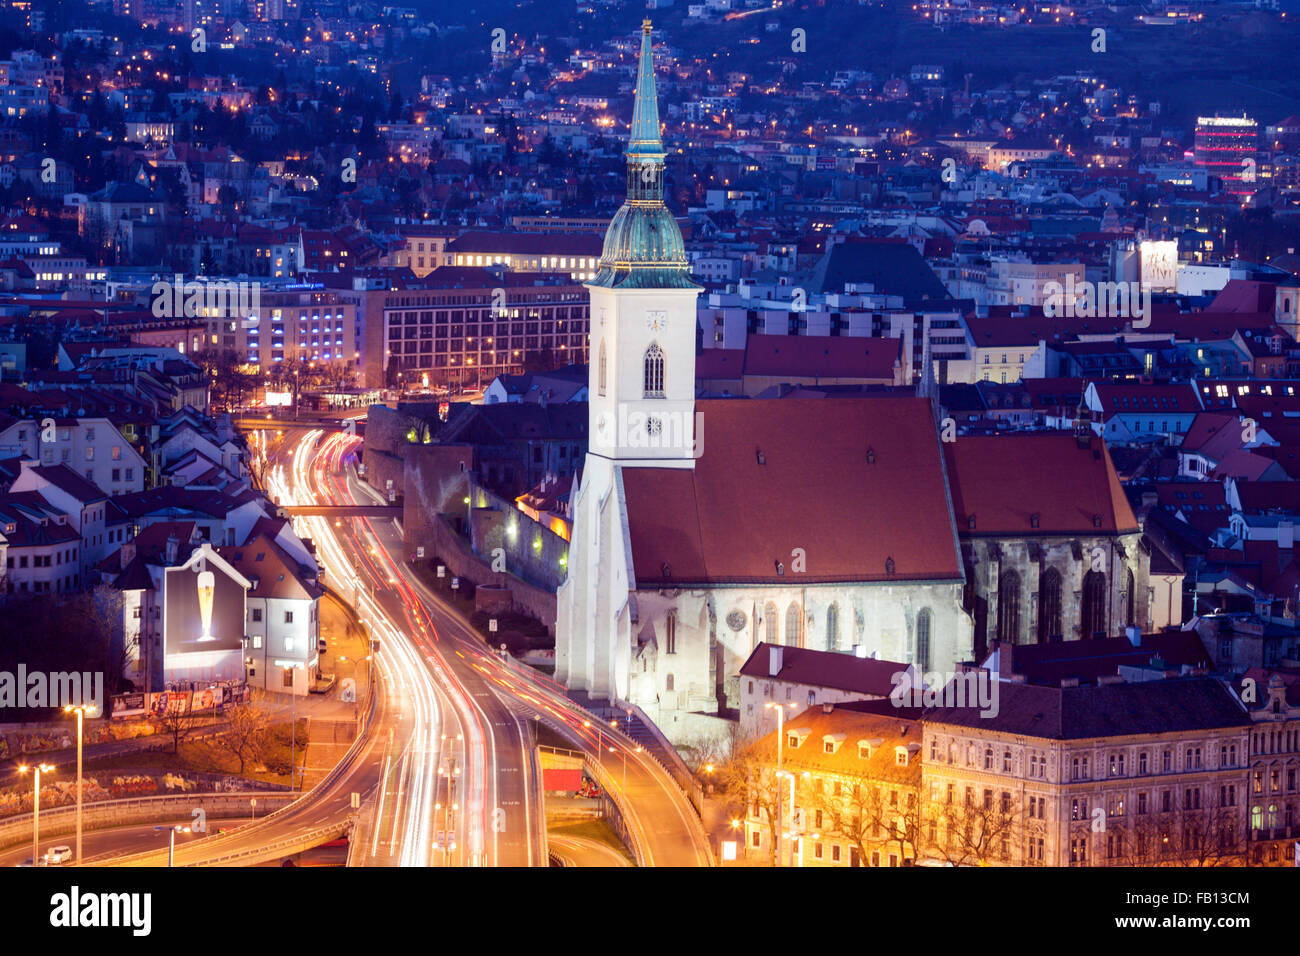 City street and St. Martin's Cathedral at night - Stock Image